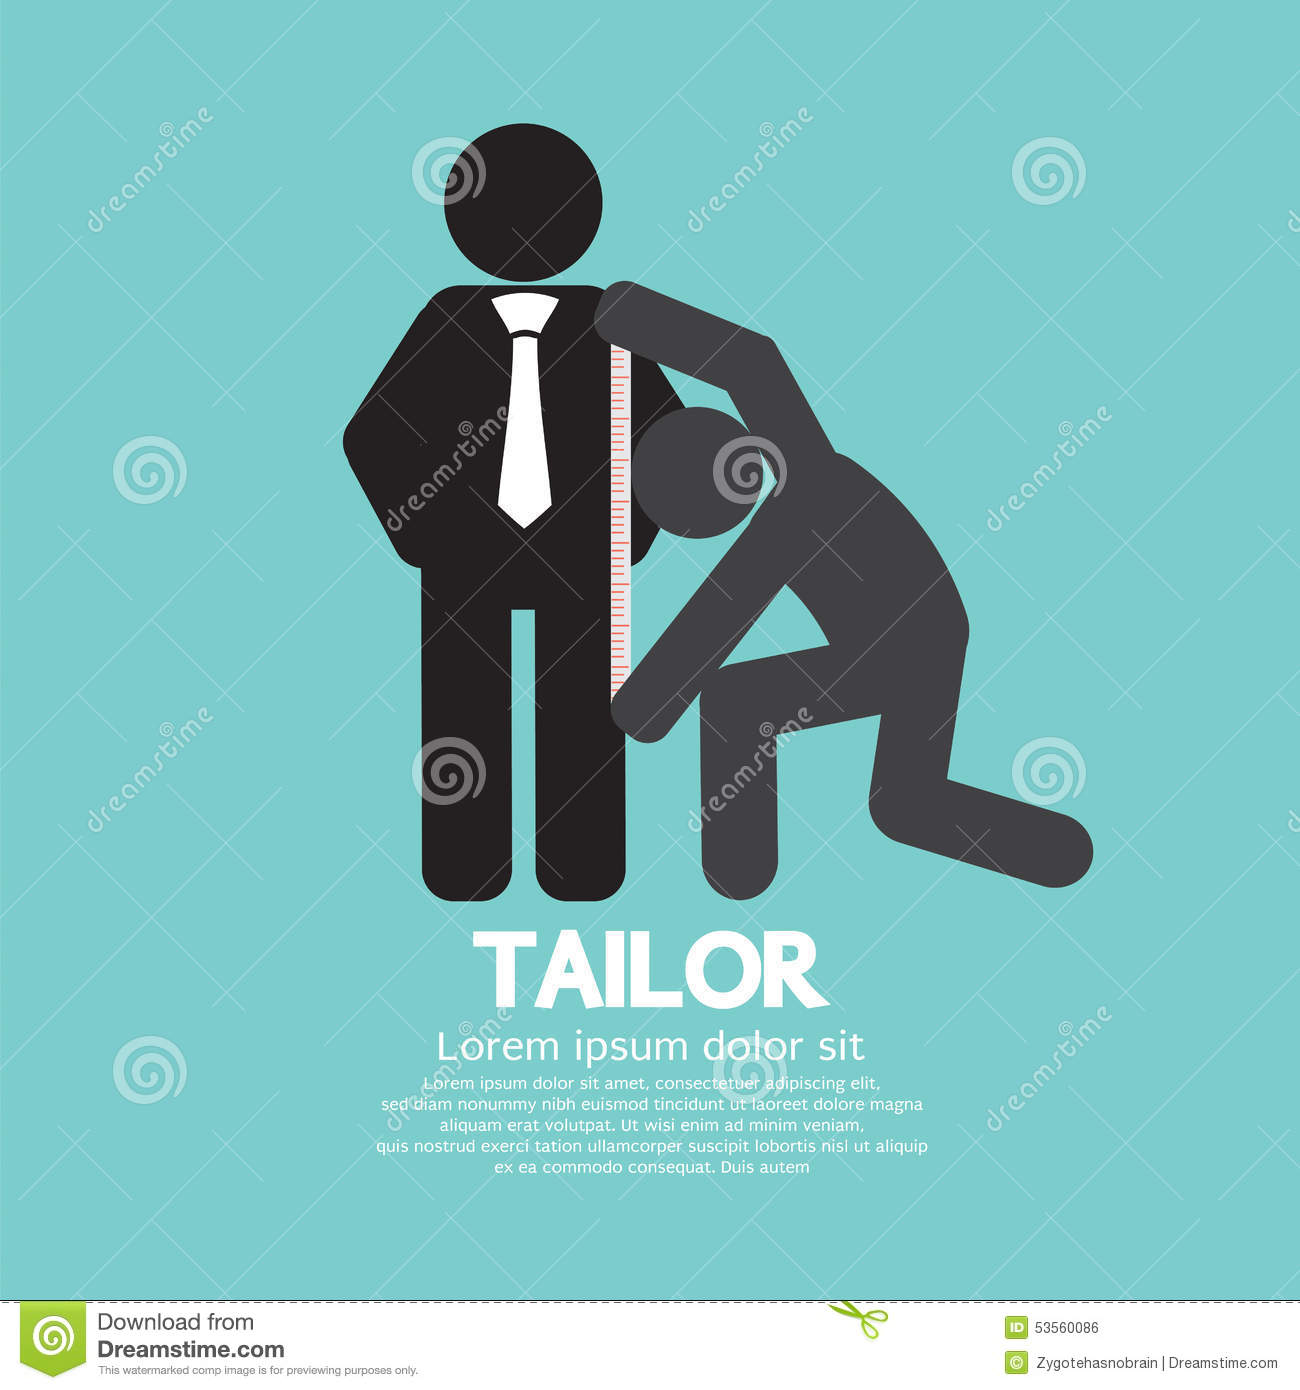 Customer Getting Measure By Tailor Symbol Stock Vector Illustration Of Measurement Business